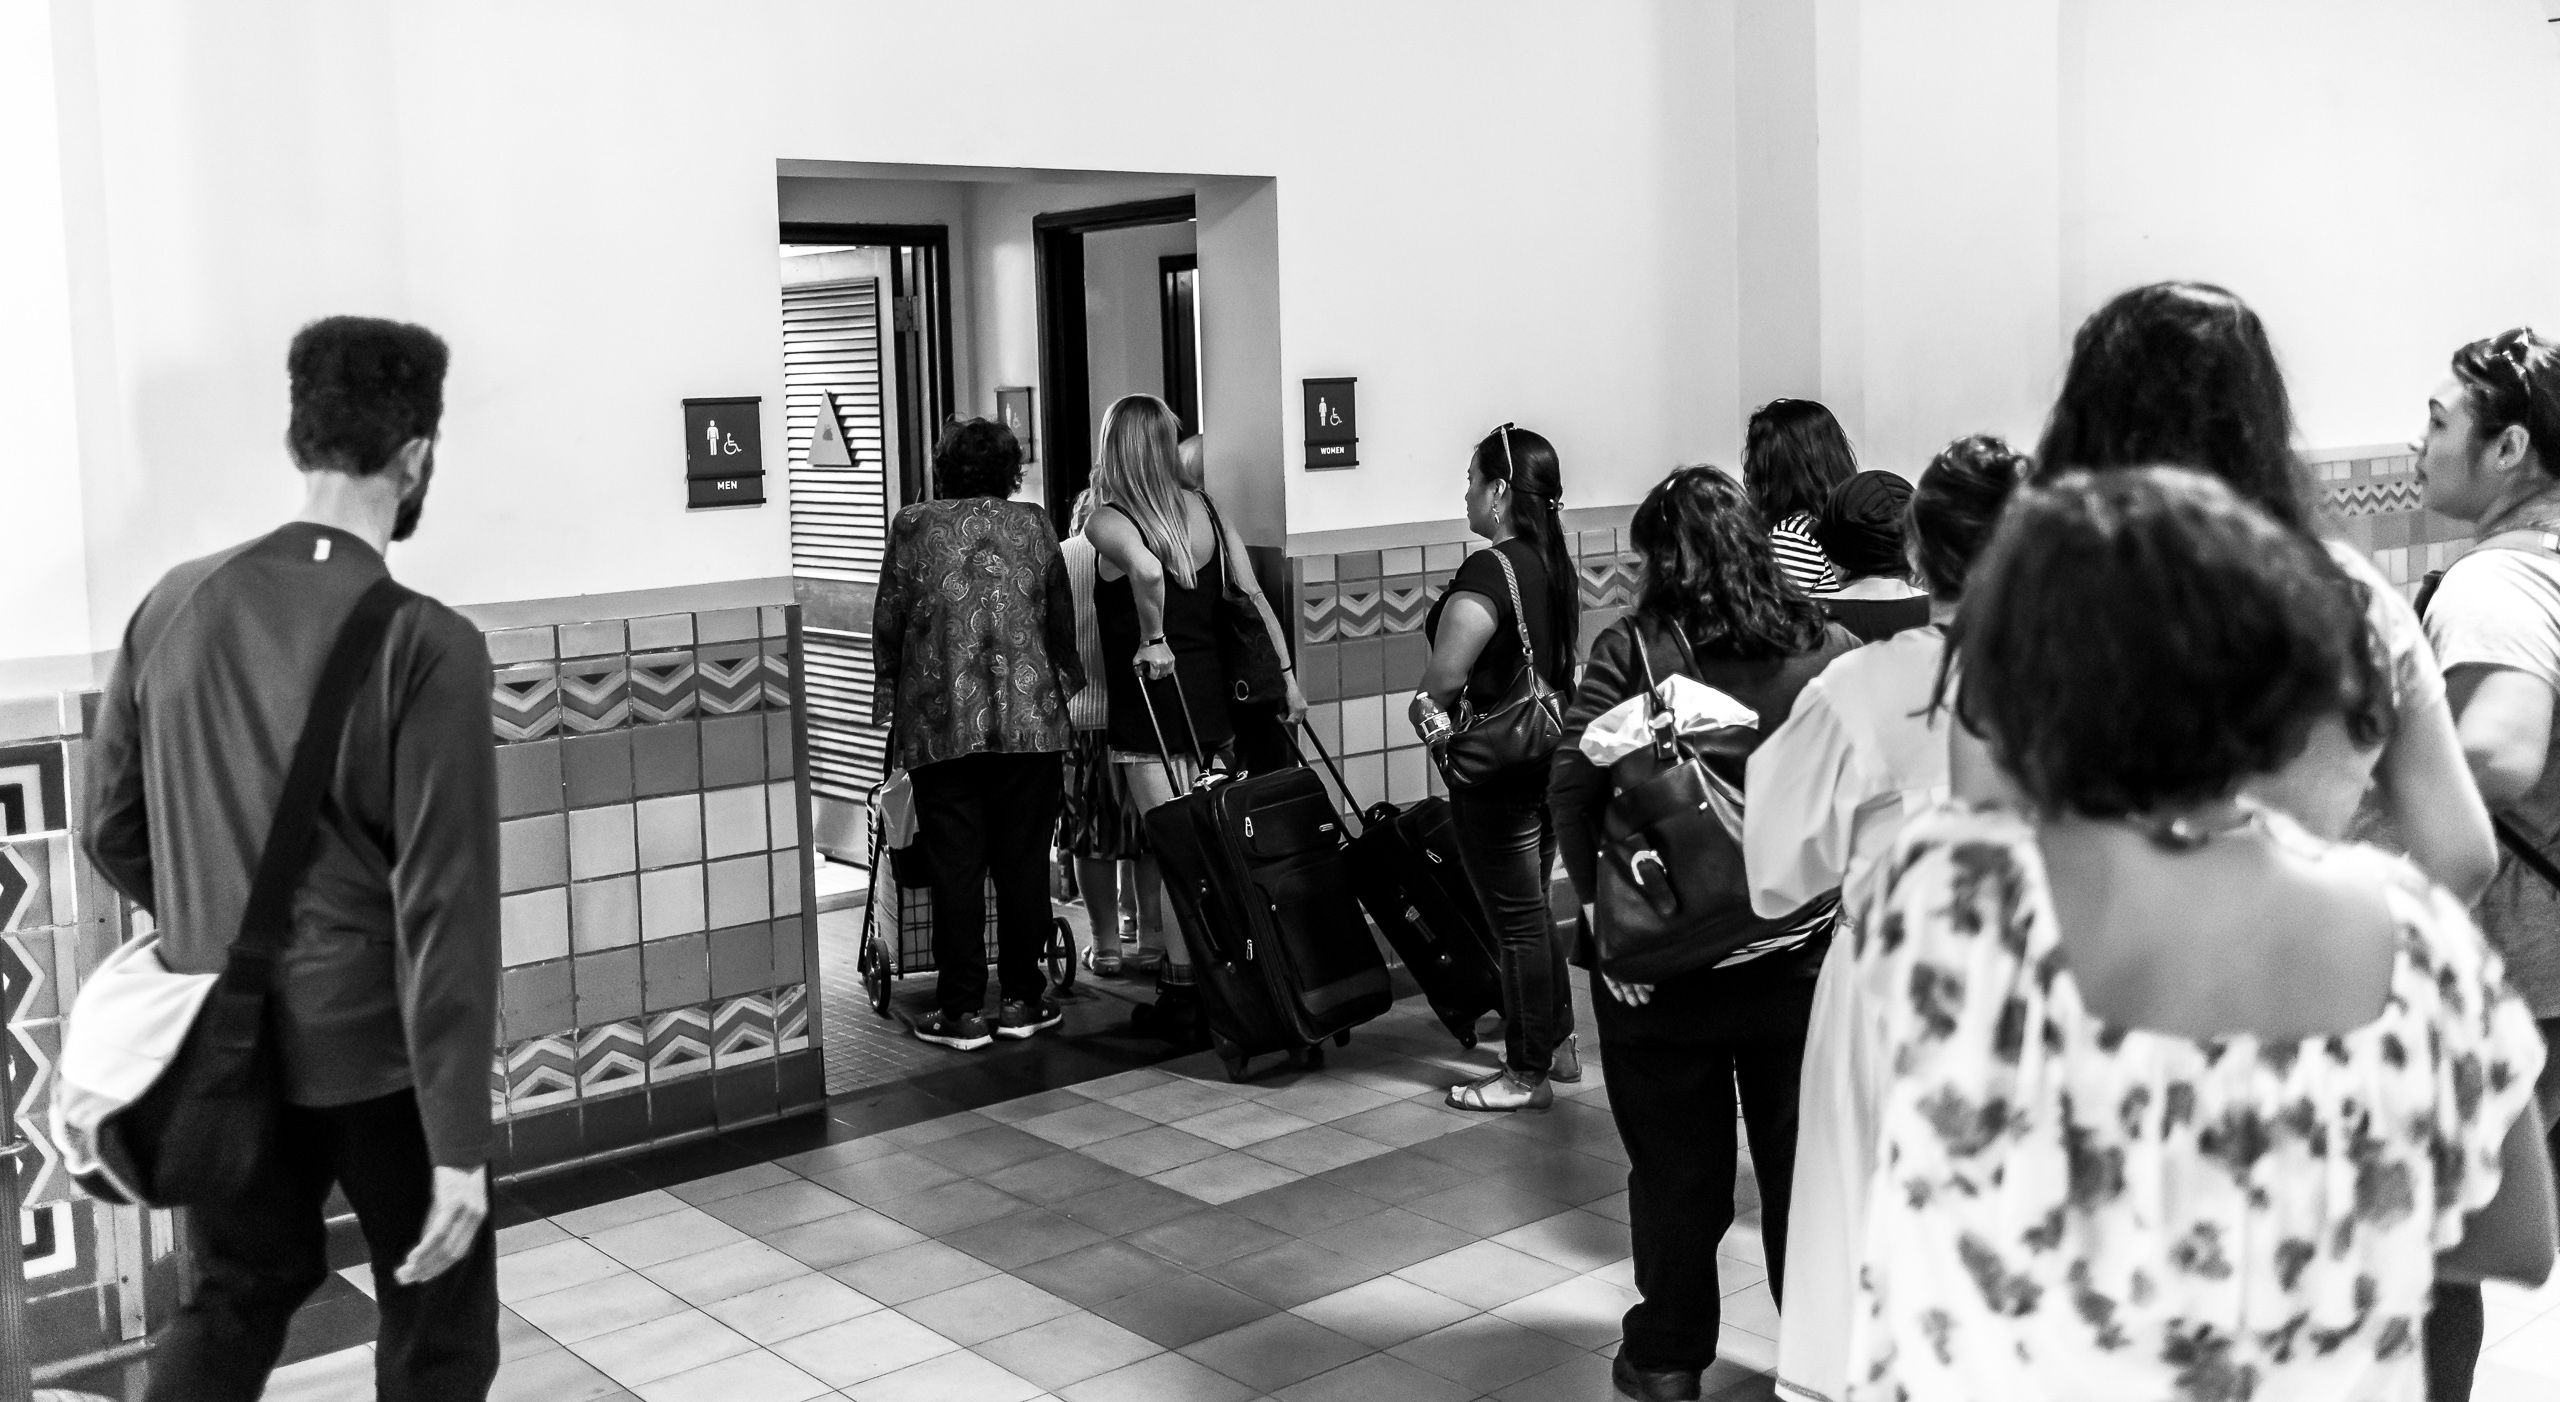 Bathrooms at Union Station in Los Angeles, California. One man walks into an empty men's room as a long line of women wait outside the women's room